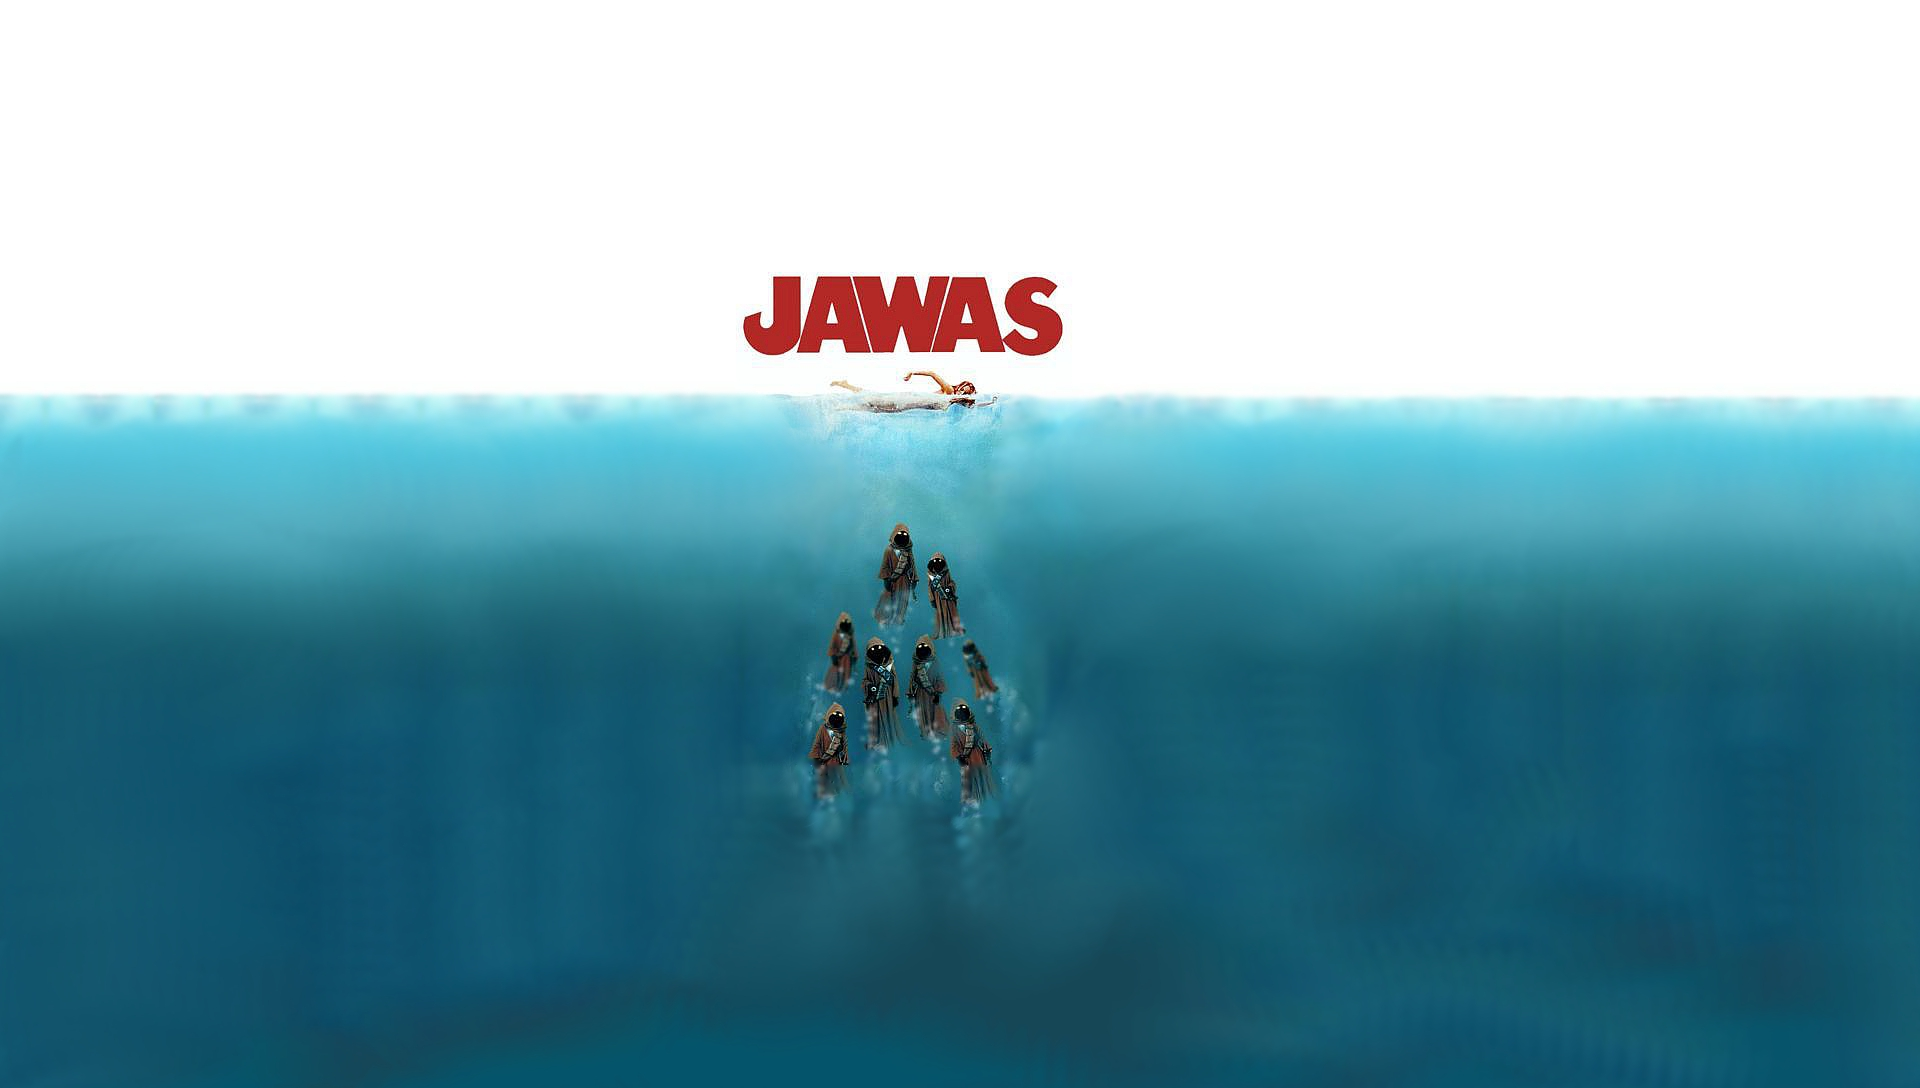 3 jaws hd wallpapers backgrounds wallpaper abyss